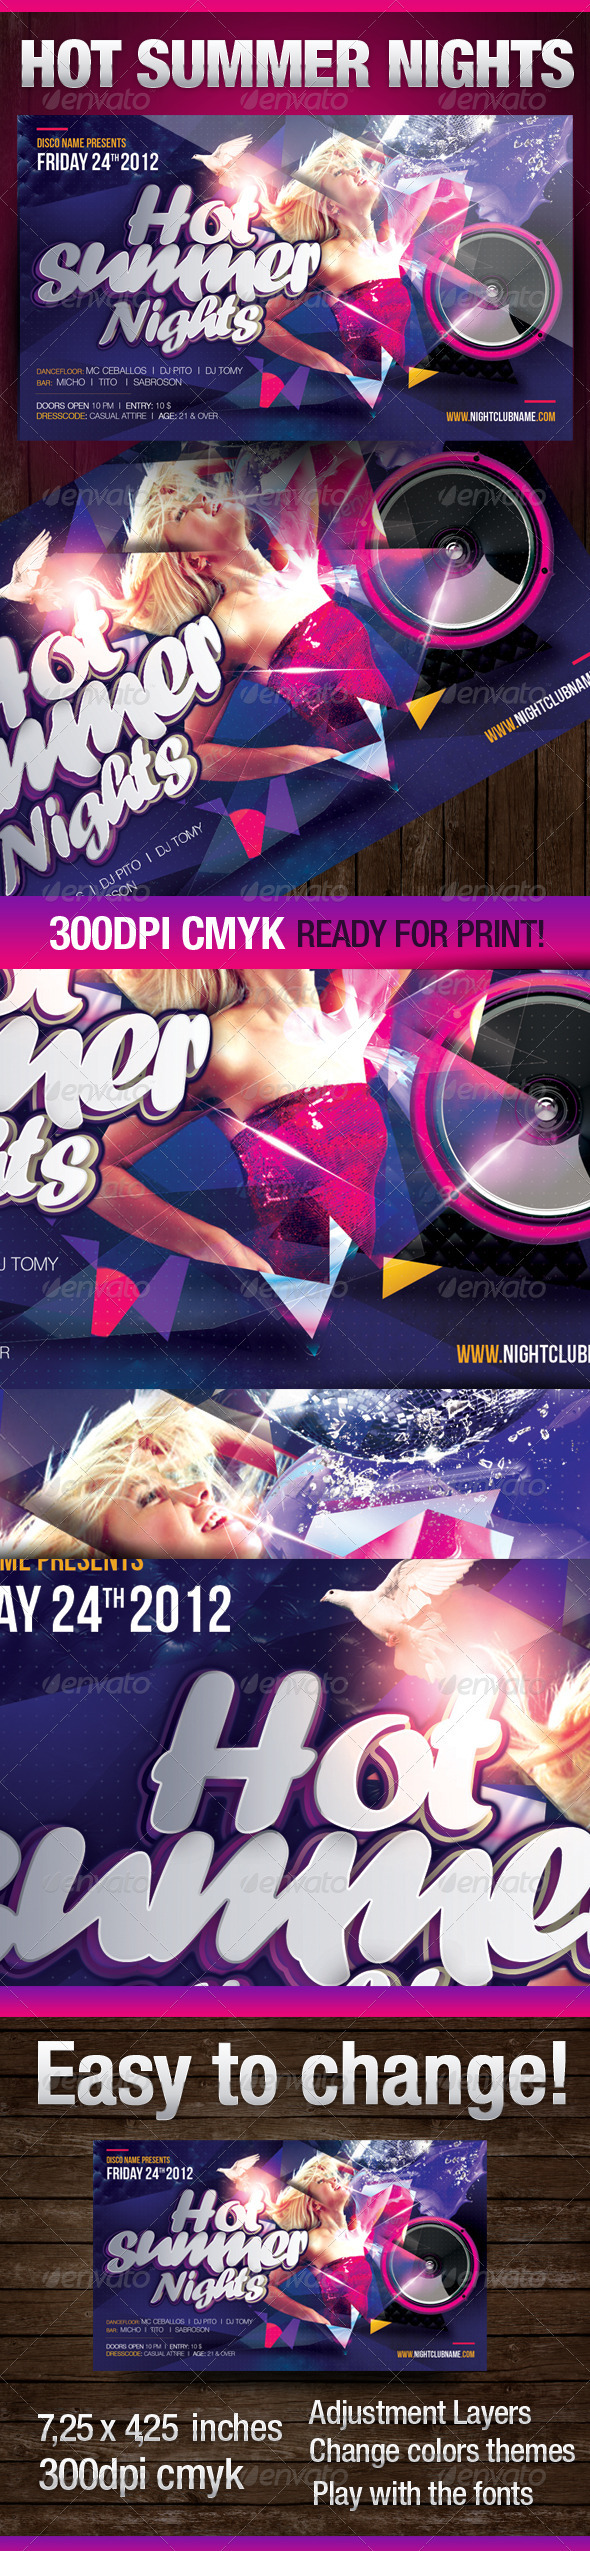 Hot Summer Nights Party Flyer - Flyers Print Templates